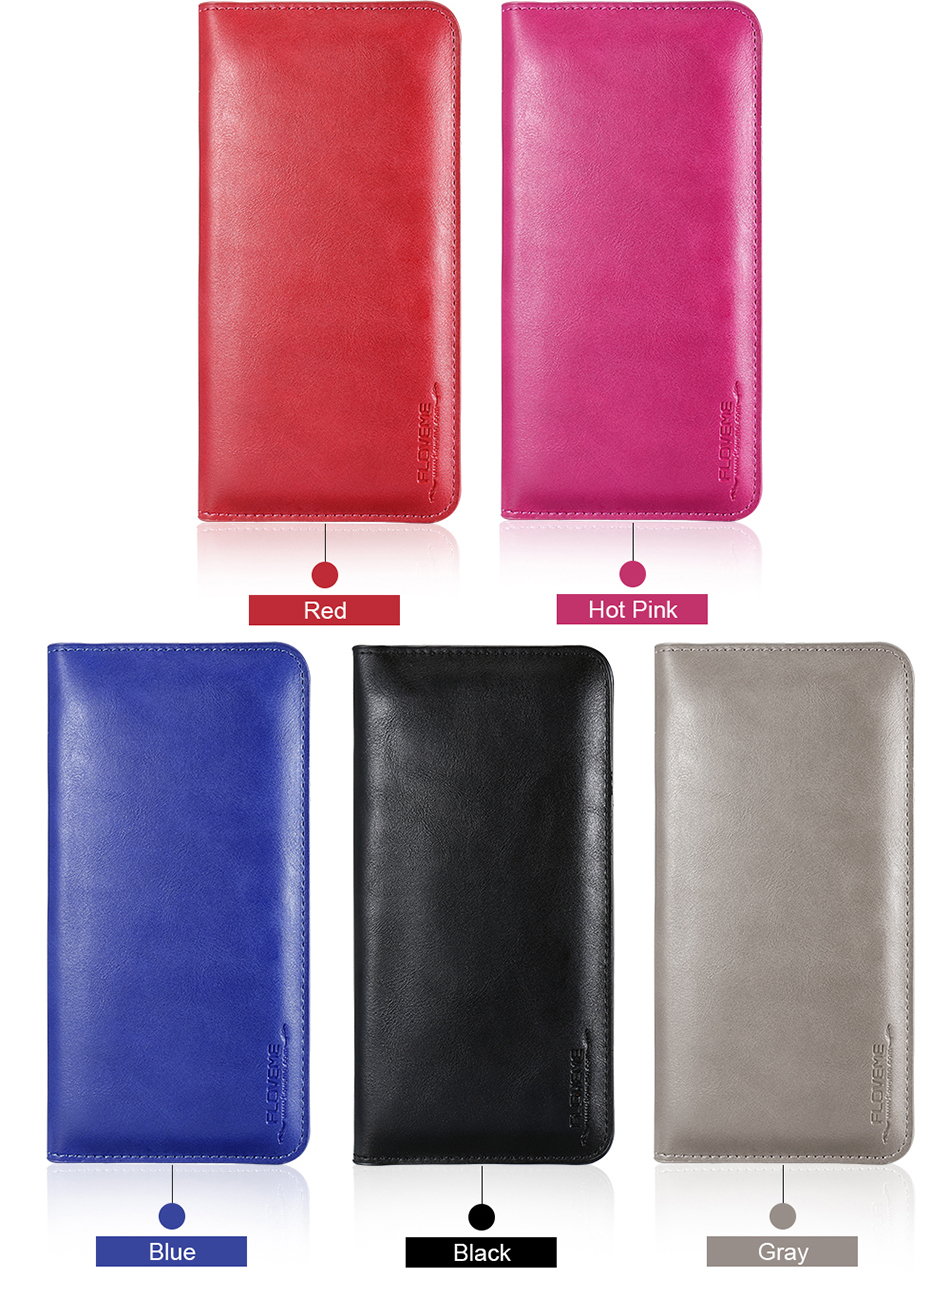 FLOVEME Genuine Leather Wallet Case For iPhone 6 6S 7 Plus Cover Multi-function Vintage Luxury Phone Pouch For Samsung S6 S7 (15)